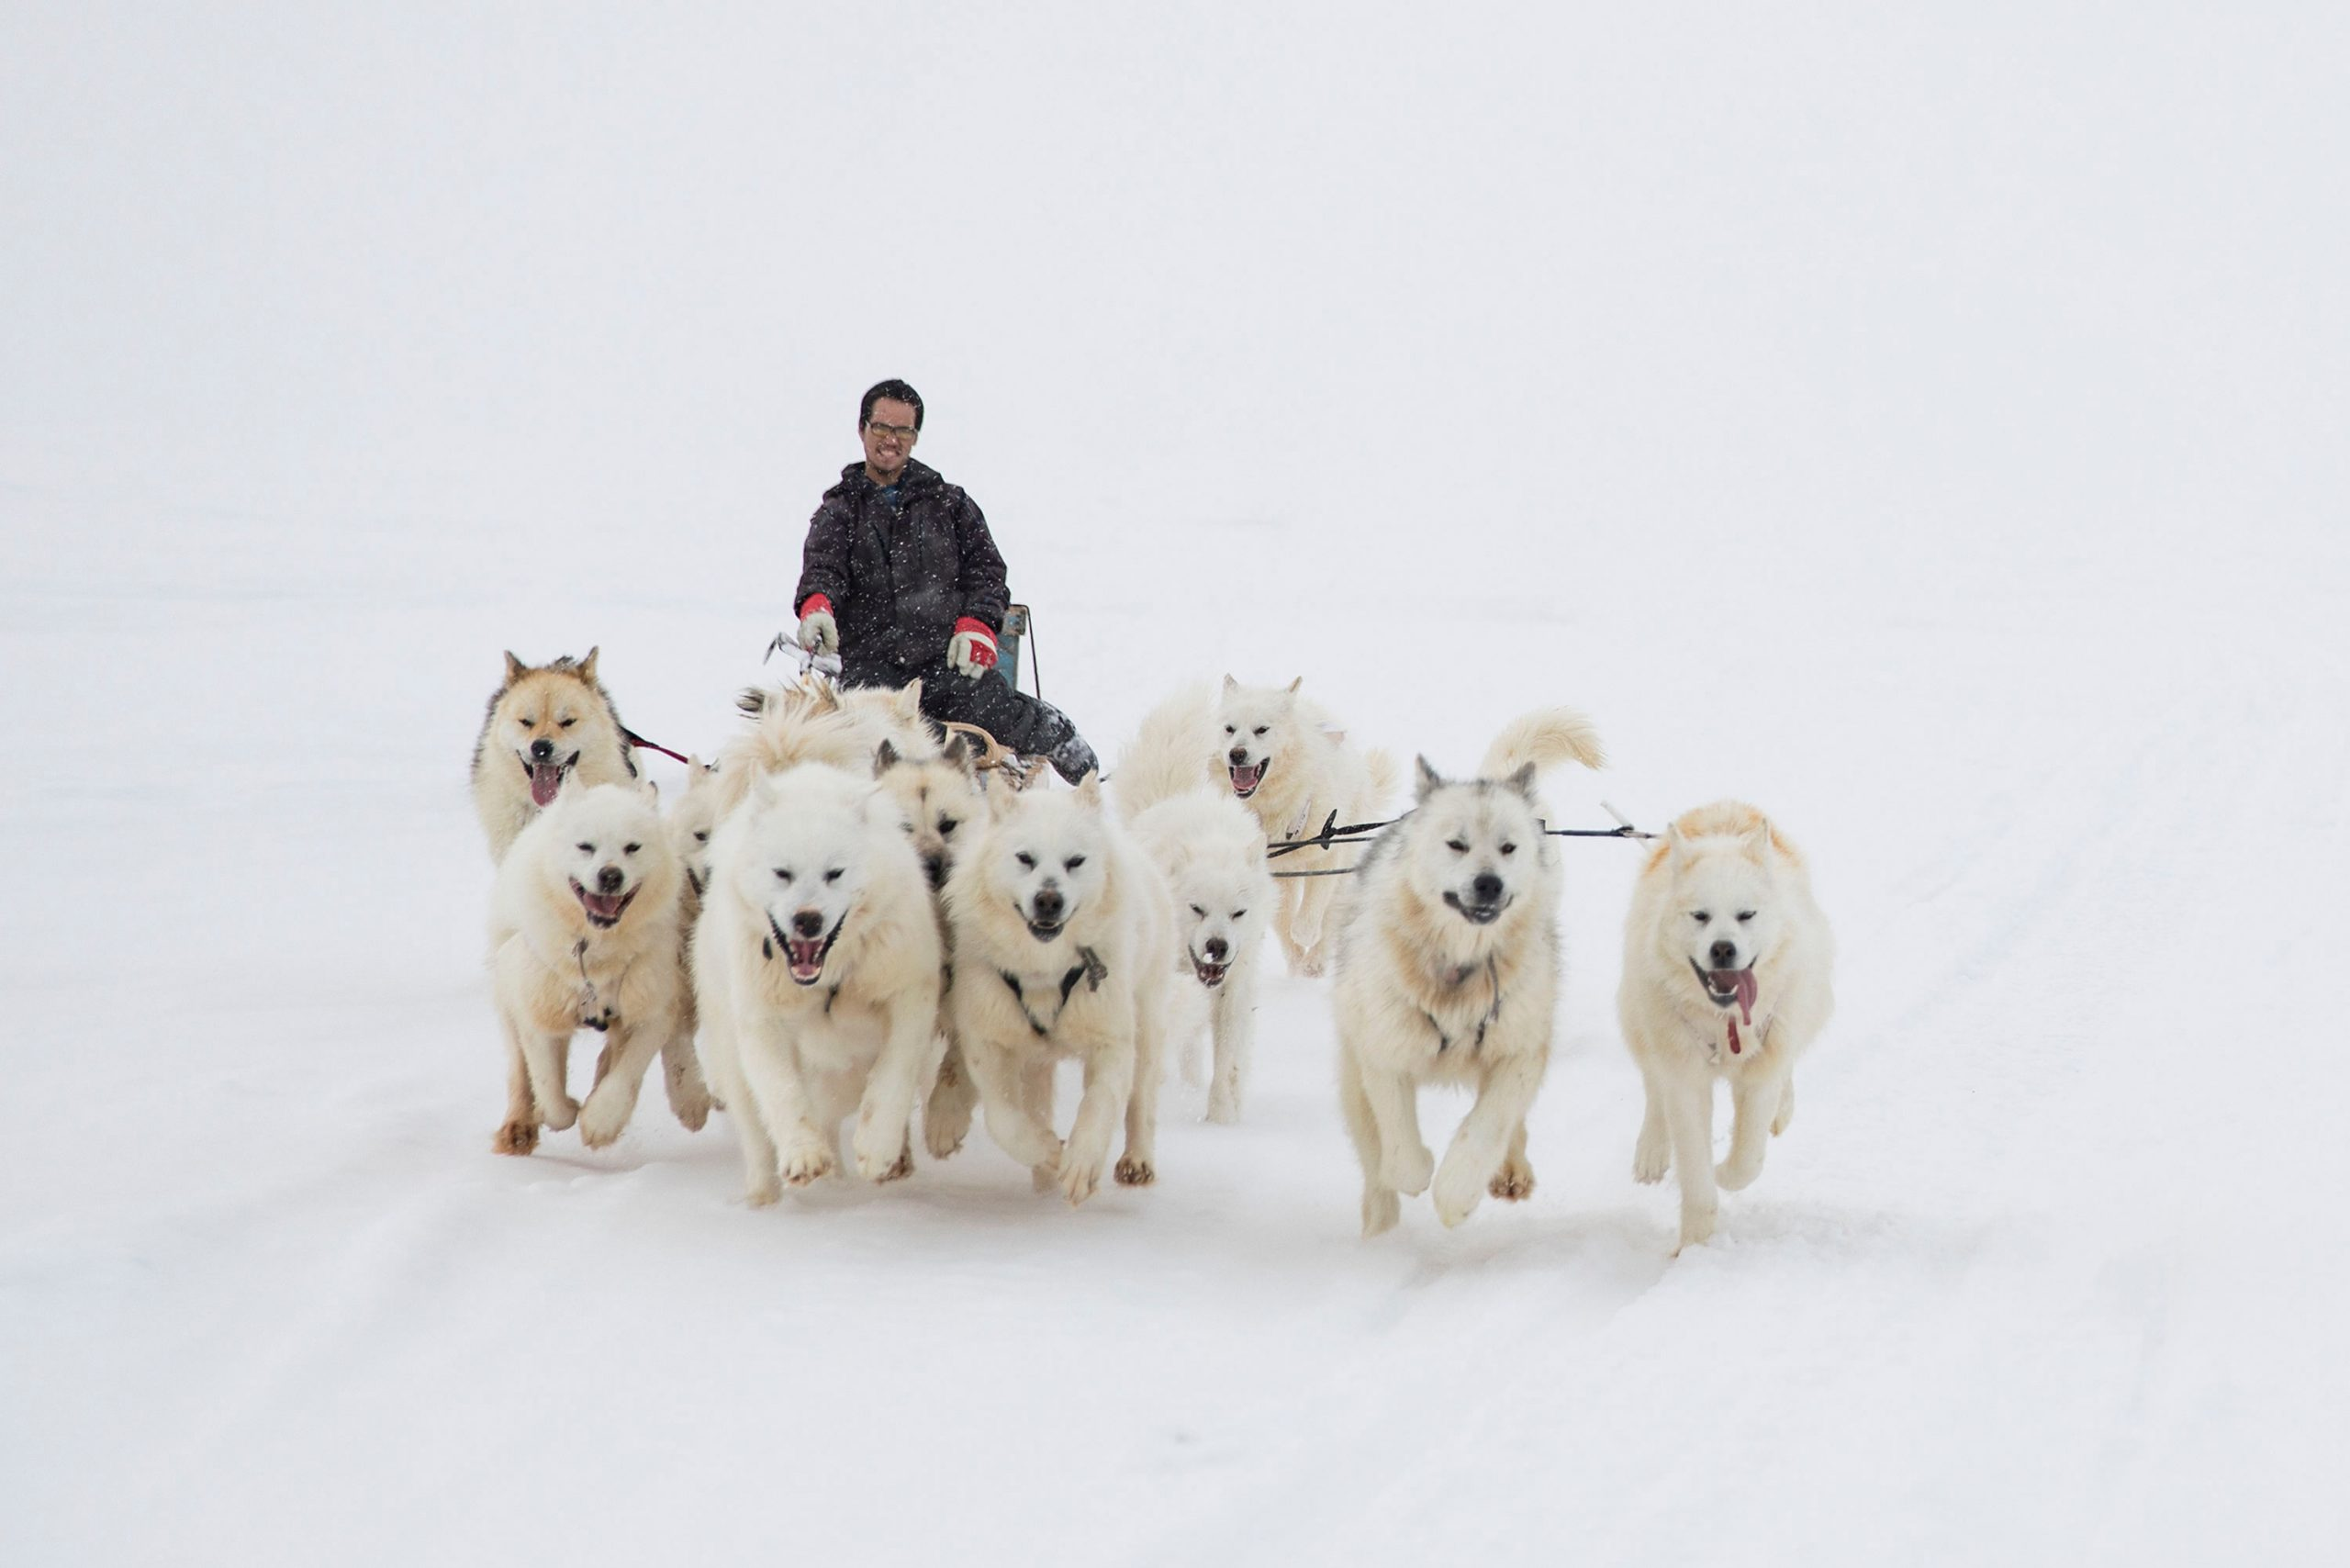 Dog sled team running with musher